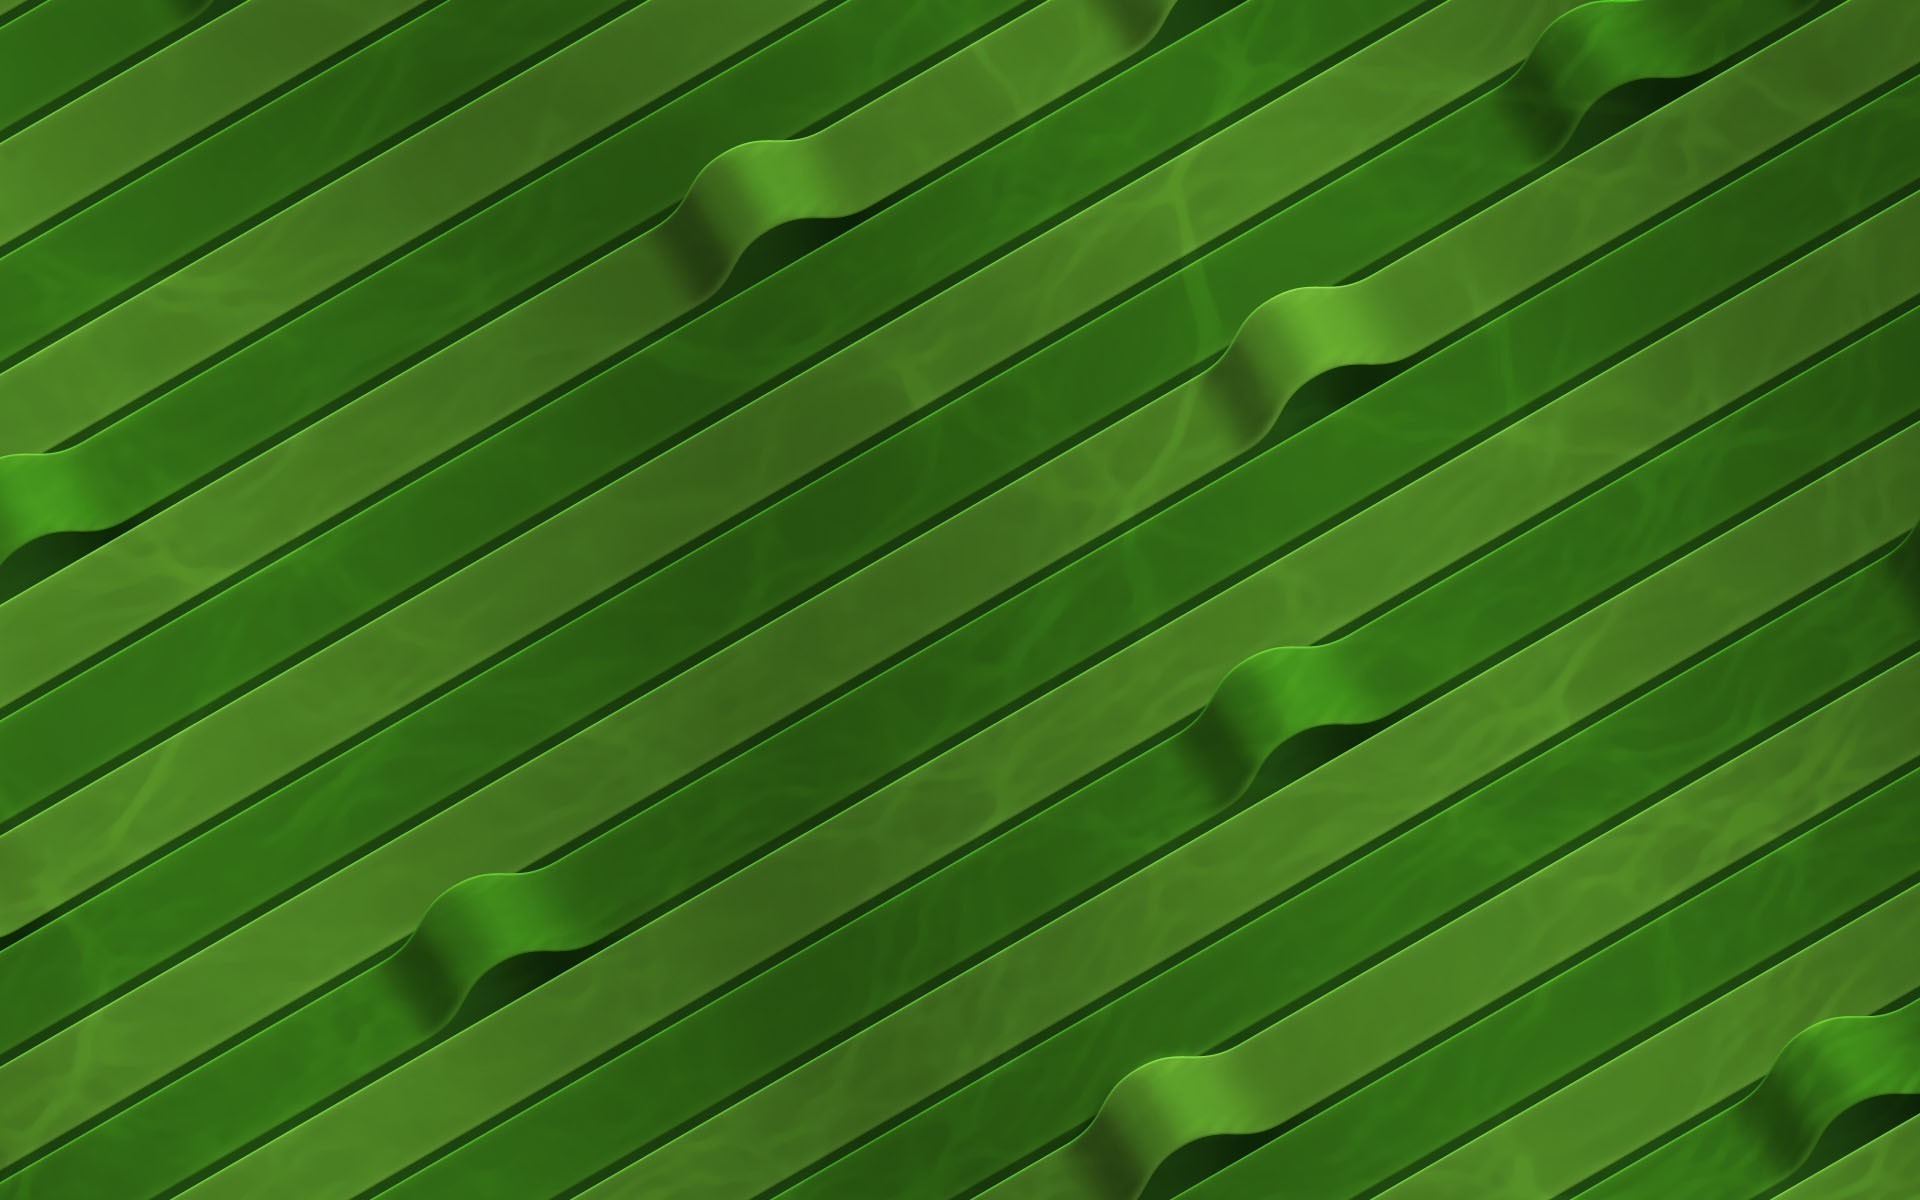 Line Texture Background : Daigonal floor green lines texture